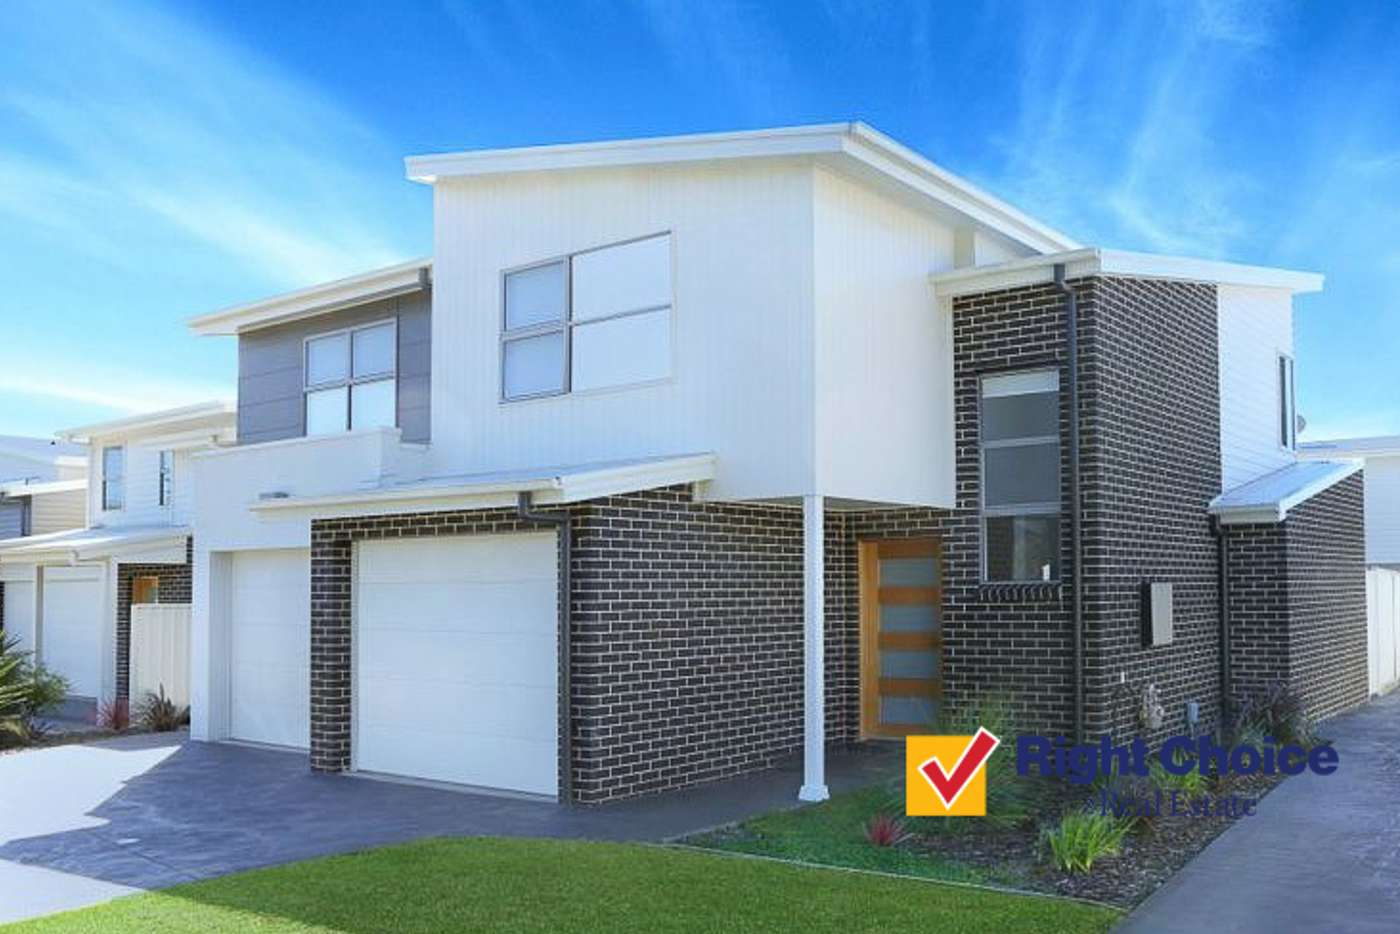 Main view of Homely townhouse listing, 32 Foster Road, Flinders NSW 2529